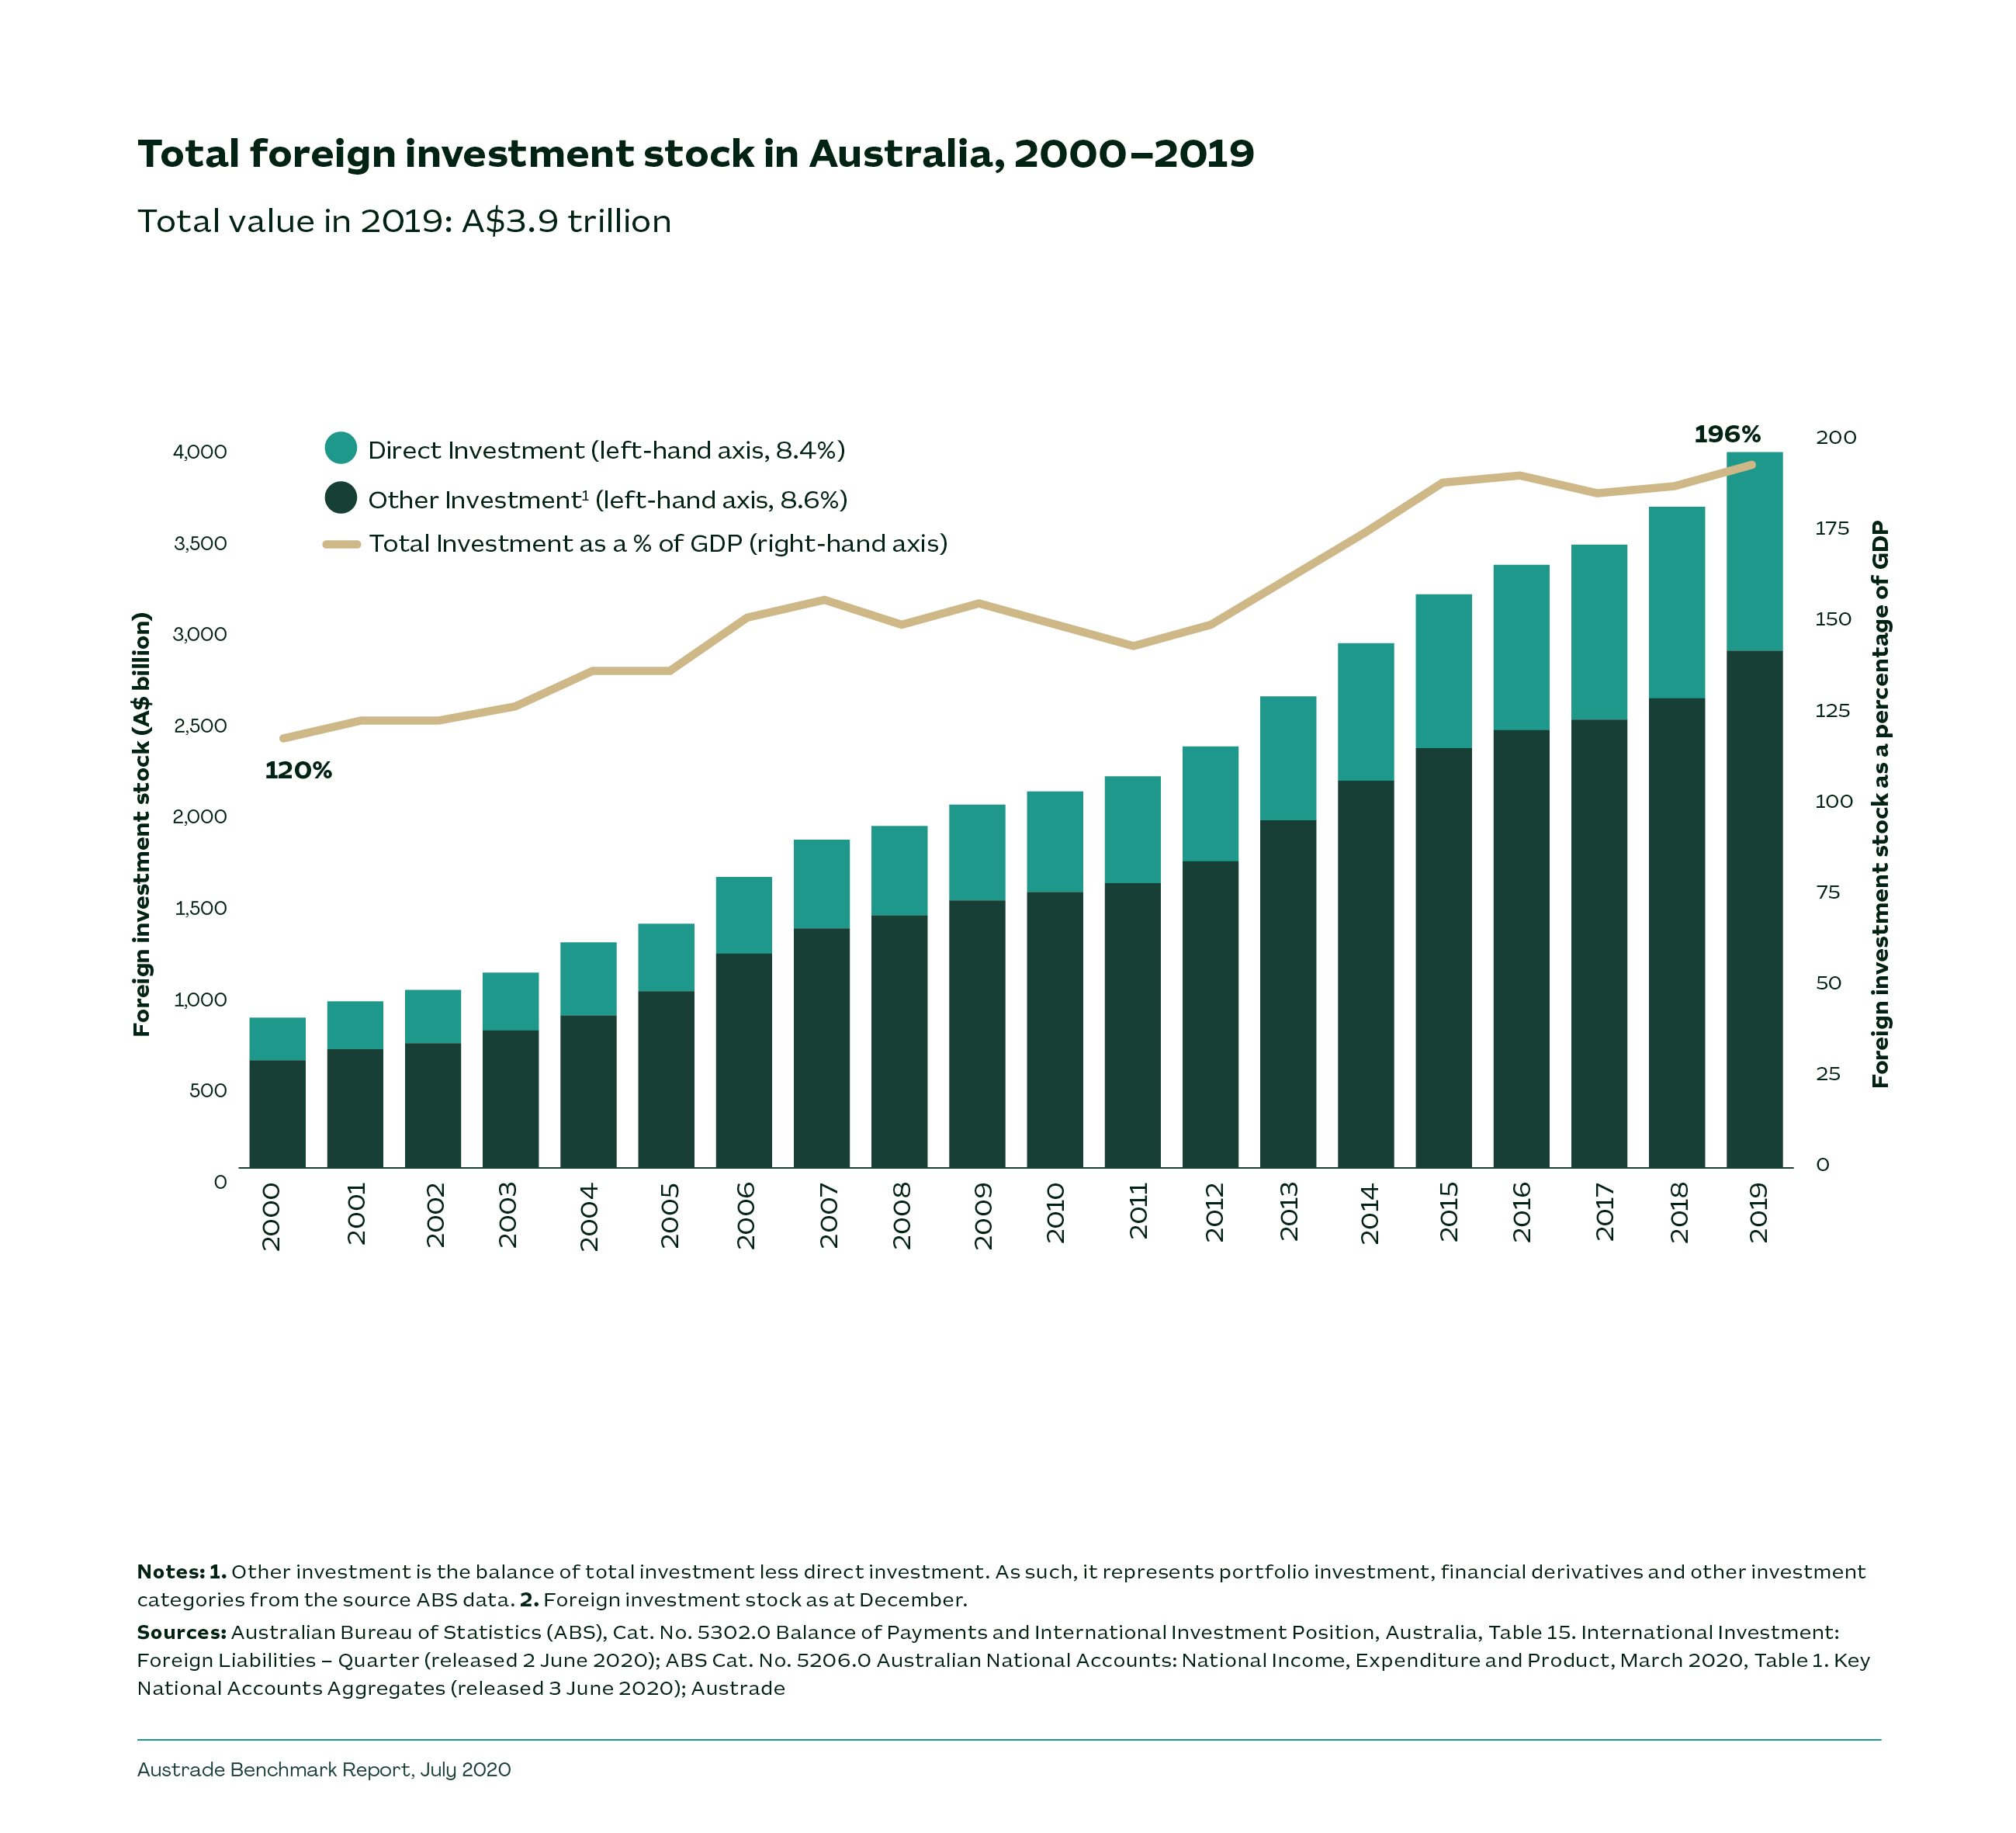 Total foreign investment stock in Australia, 2000-2019